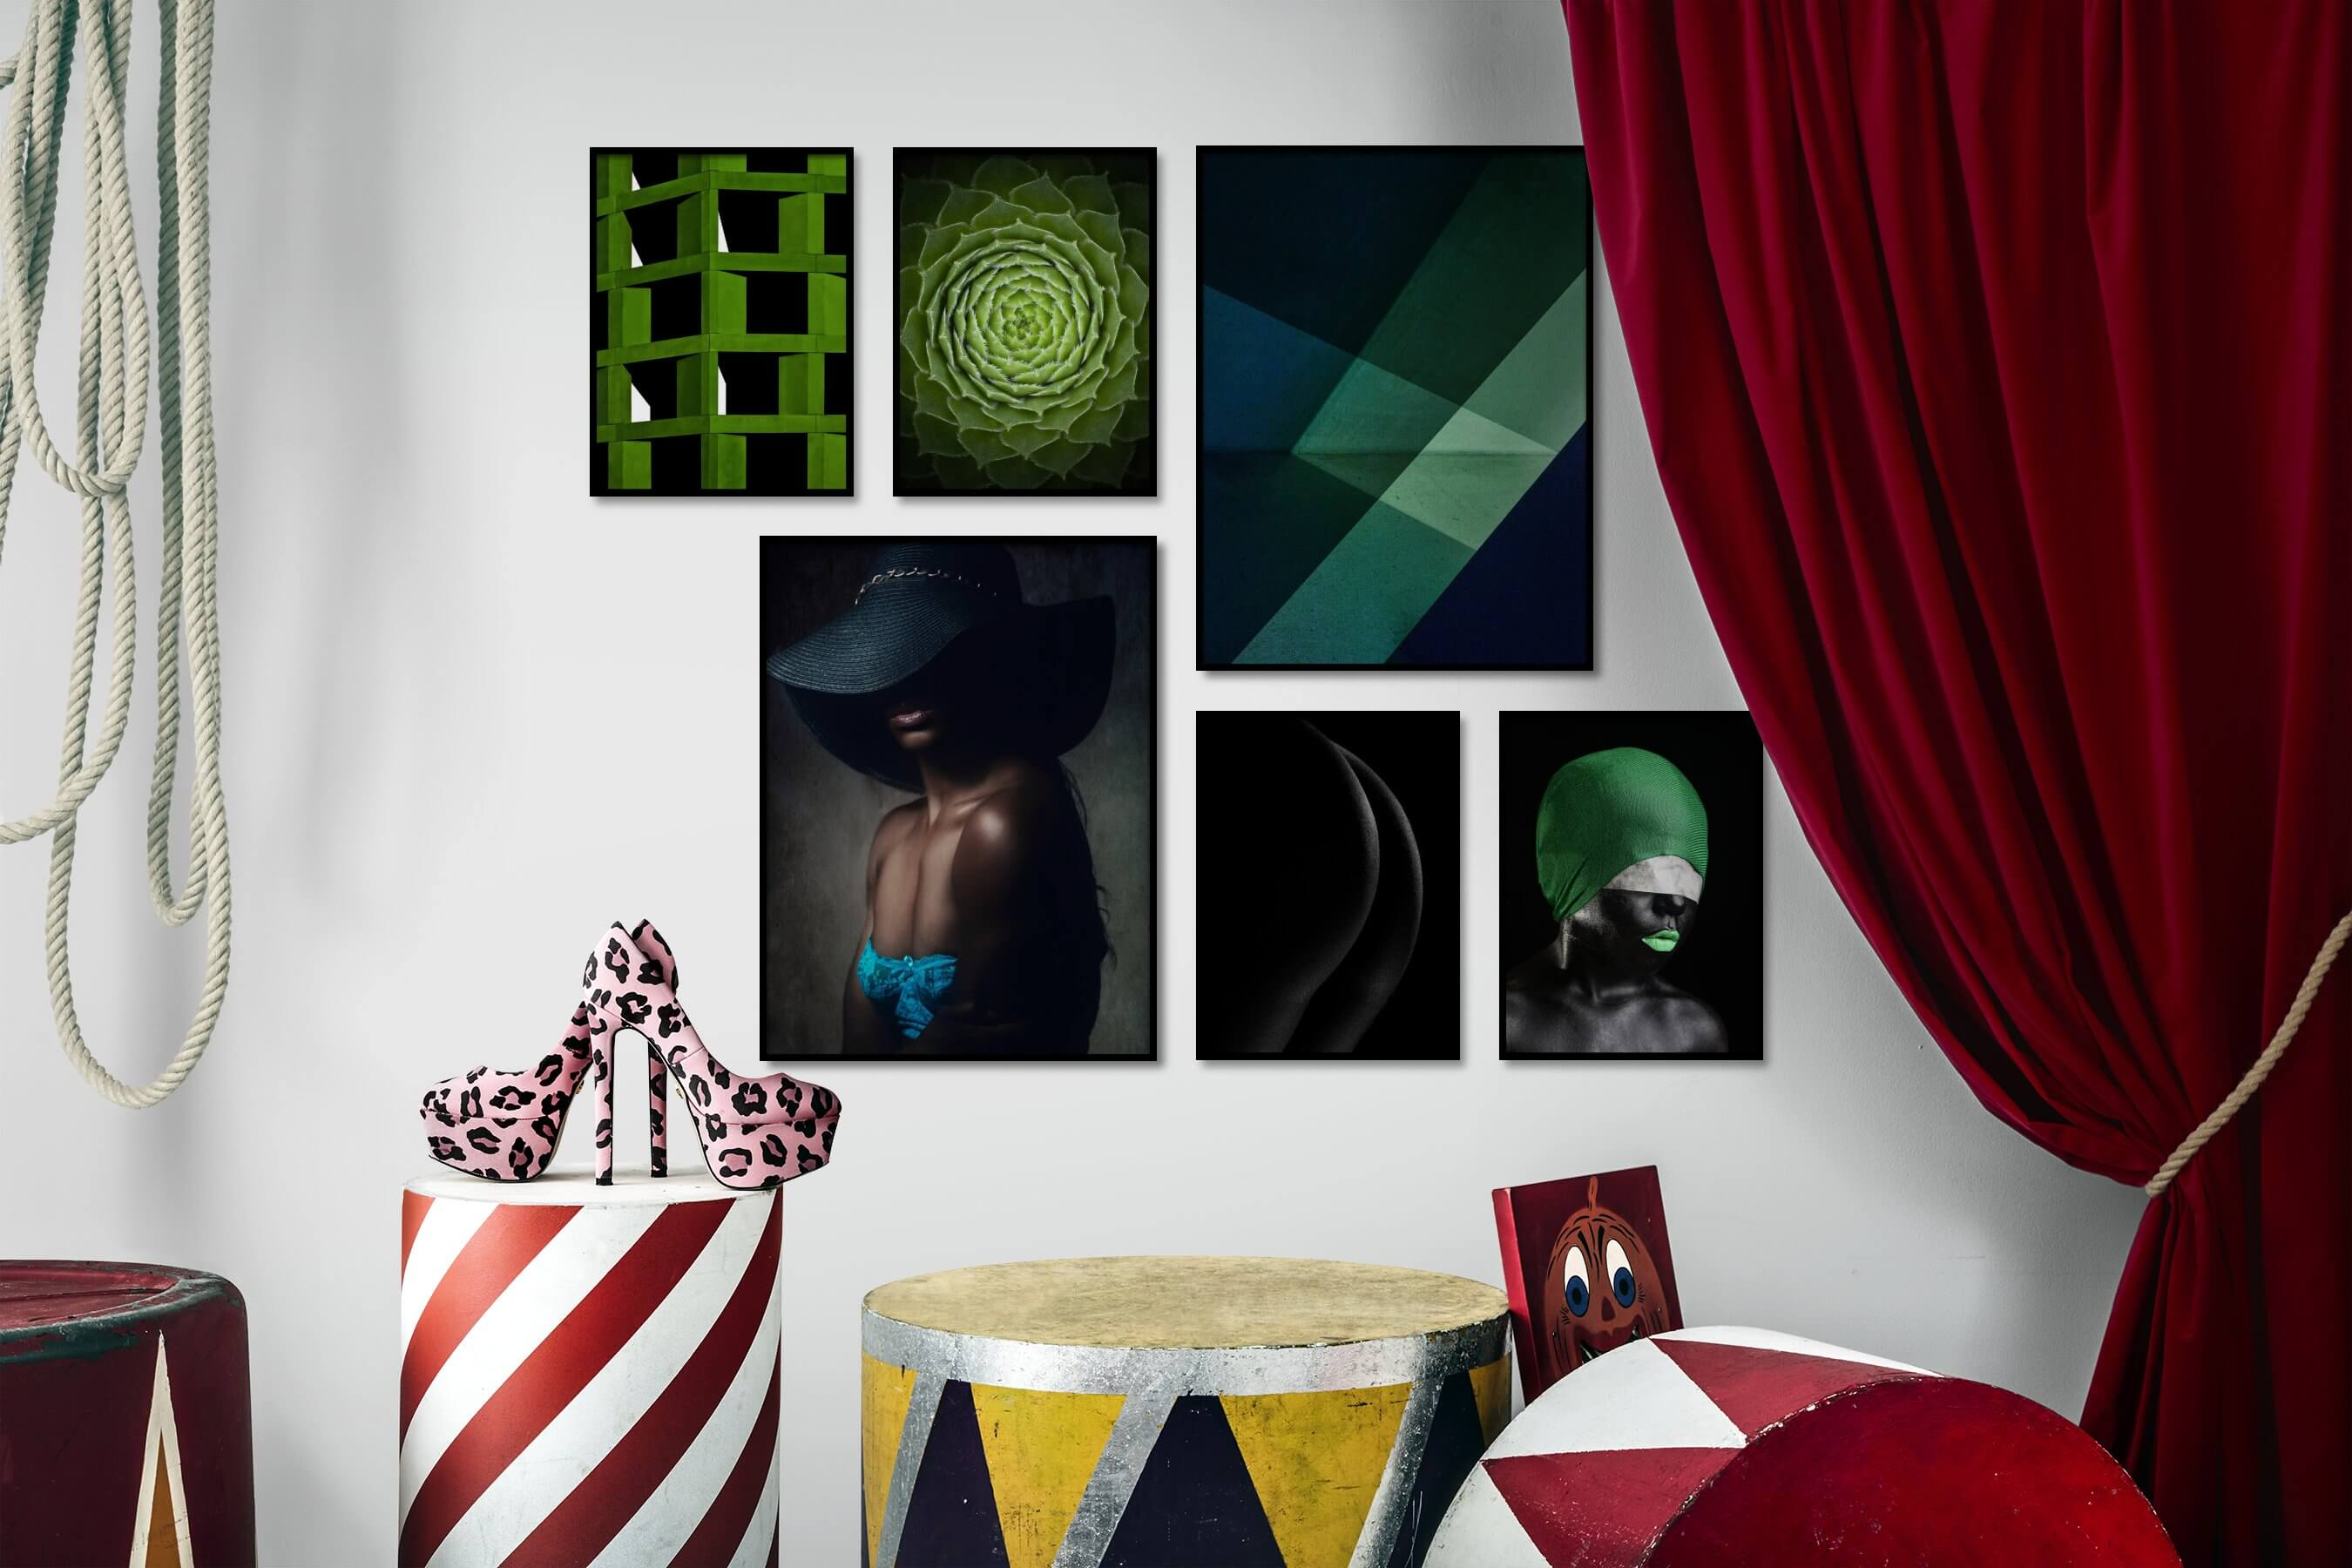 Gallery wall idea with six framed pictures arranged on a wall depicting Colorful, For the Moderate, Flowers & Plants, Fashion & Beauty, For the Minimalist, Black & White, Dark Tones, and Artsy